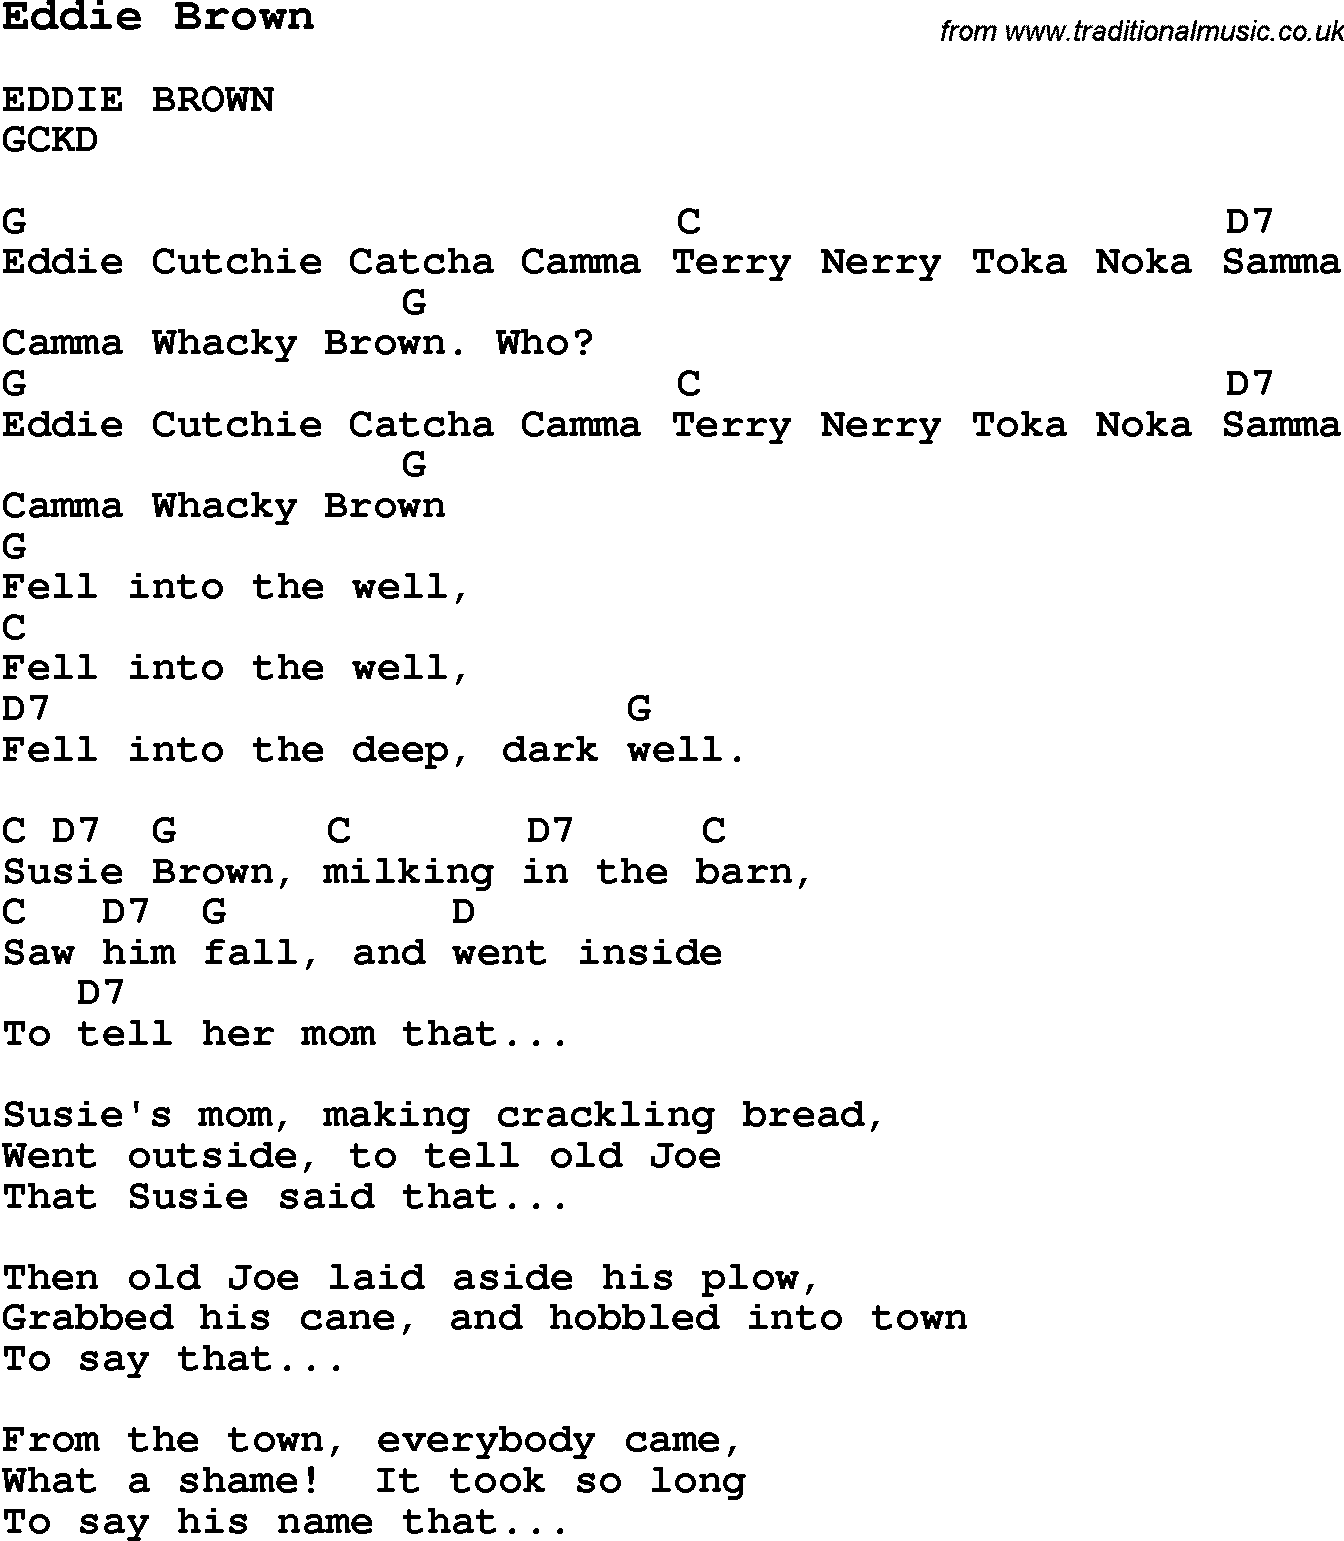 Summer Camp Song, Eddie Brown, with lyrics and chords for